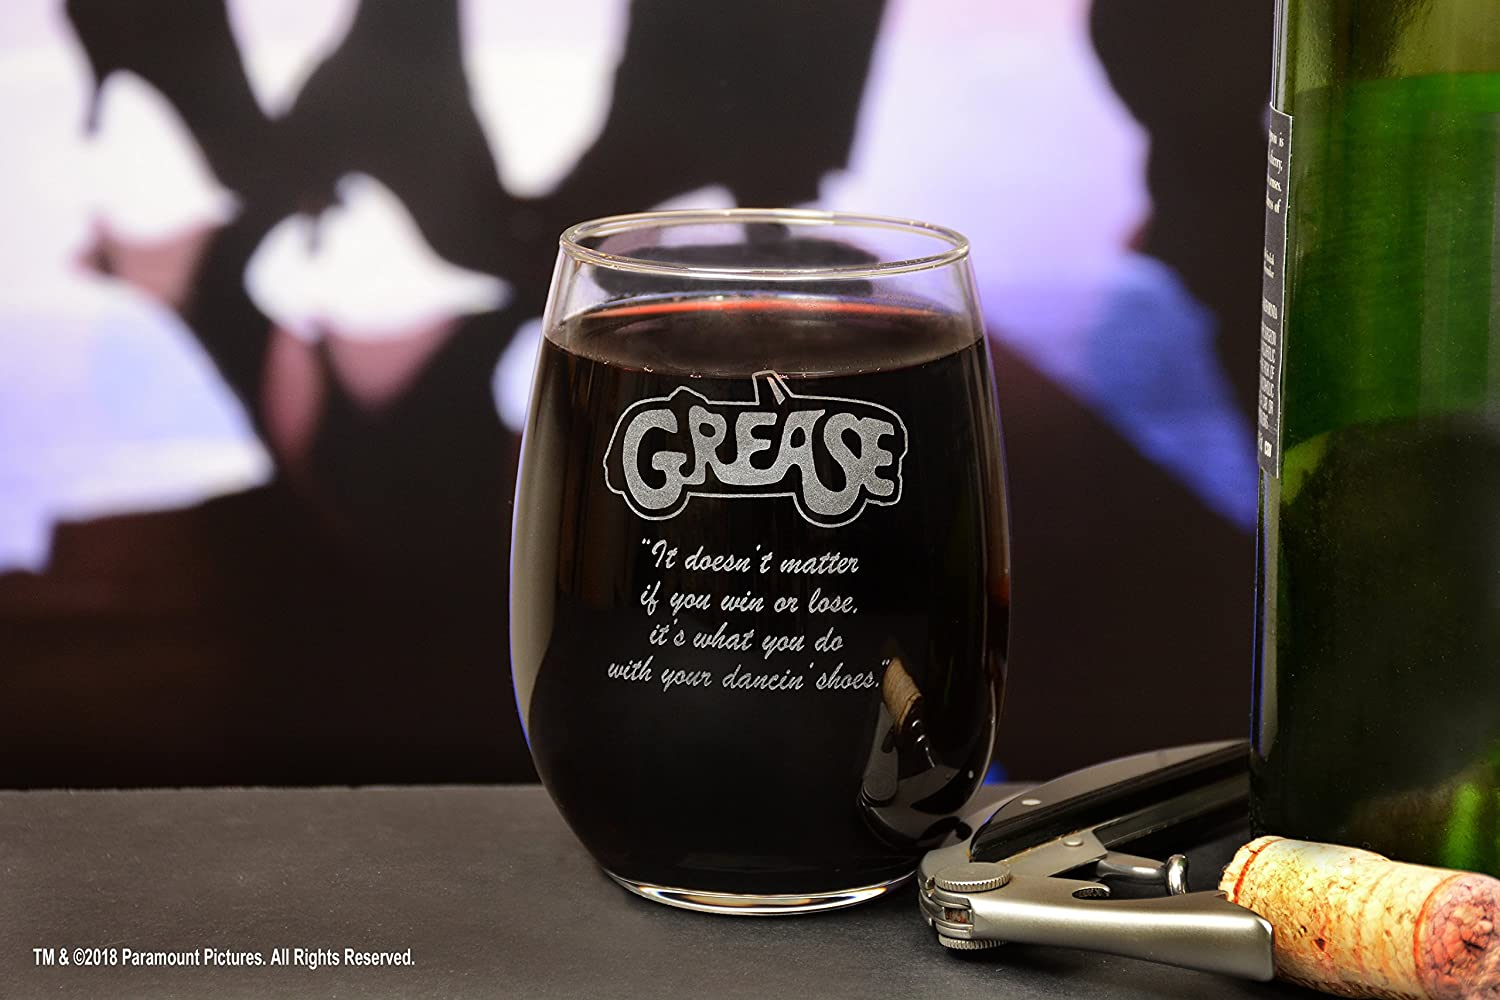 Premium Etched Grease Movie Musical With Quote,It doesnt matter if you win or lose Engraved Logo Stemless Wine Glass Movies On Glass its what you do with your dancin shoes